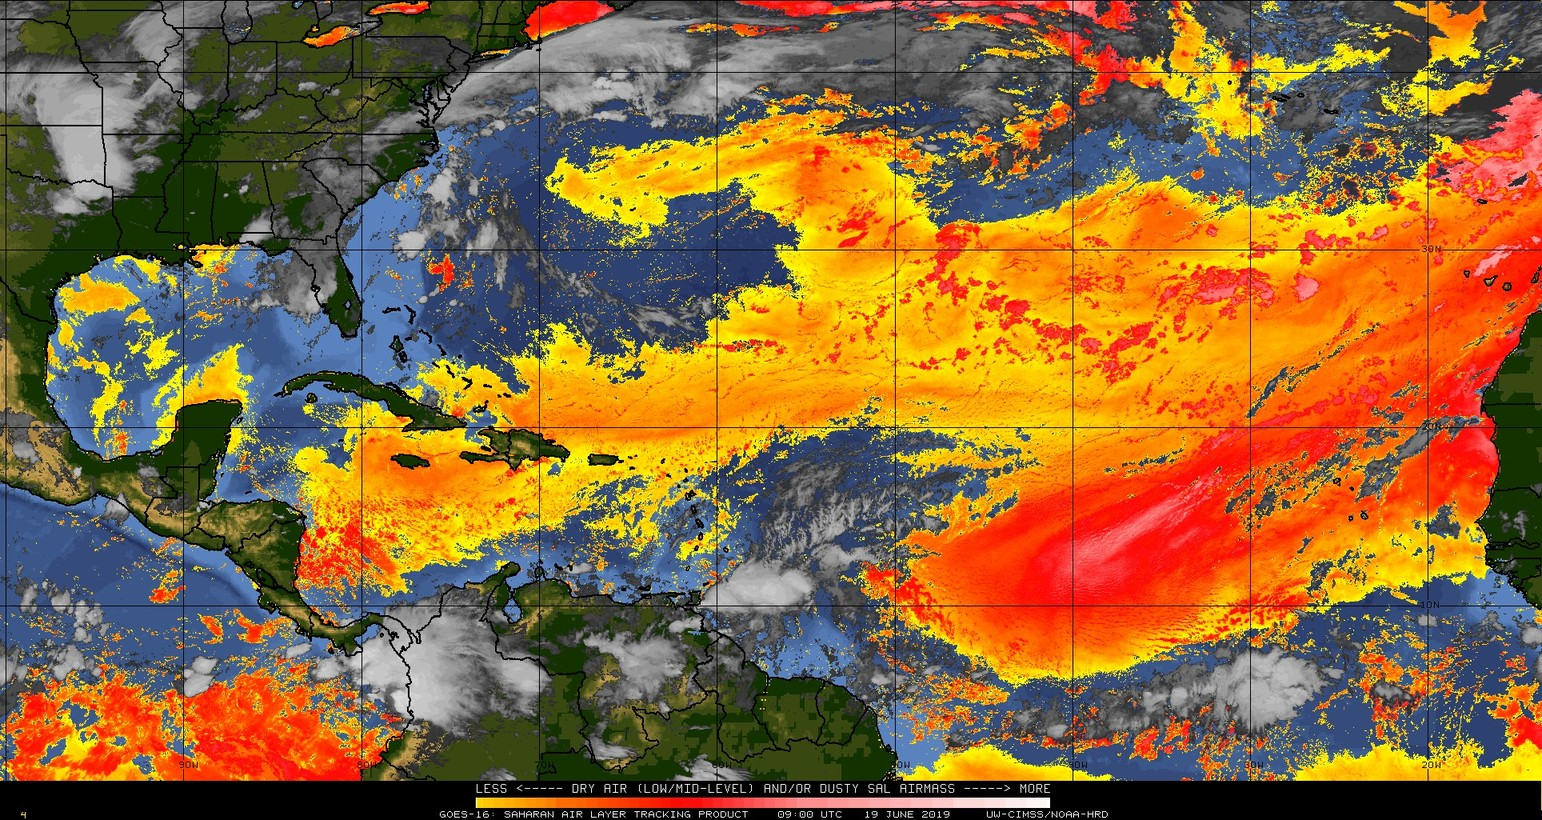 Increase Saharan dust expected this week - Jamaica Weather